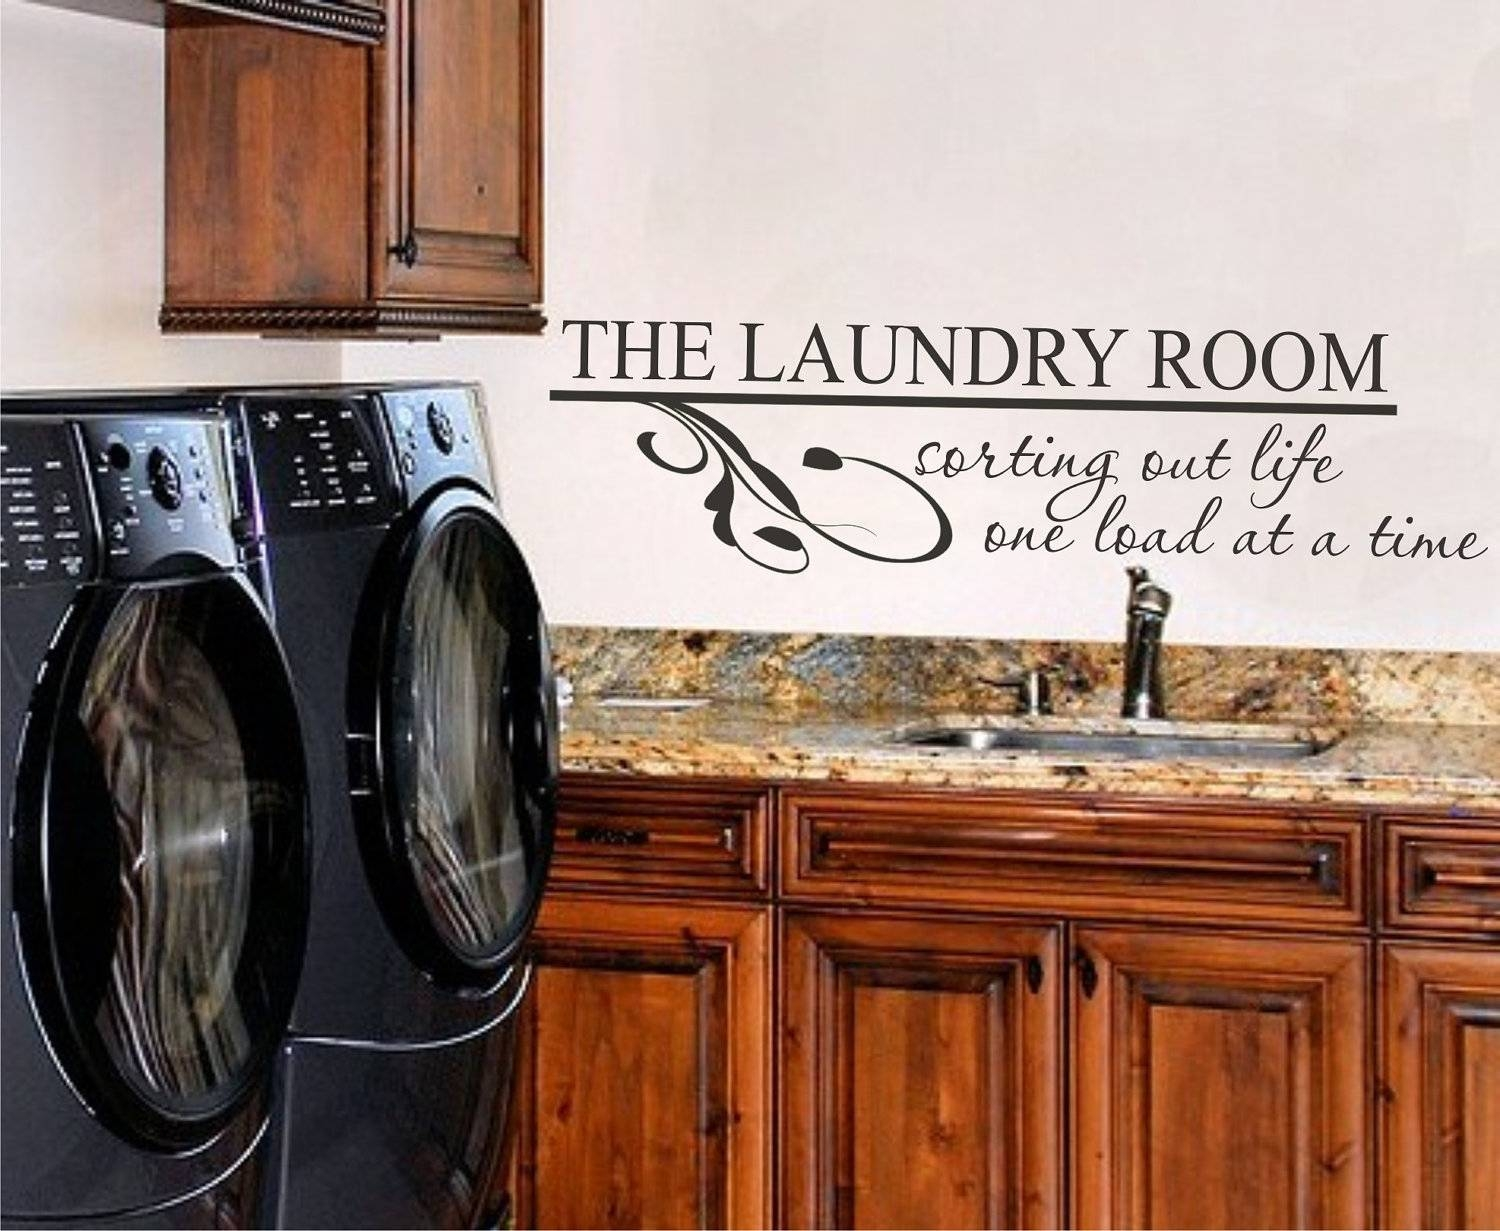 Laundry Room Vinyl Wall Art Vinyl Lettering Vinyl Decal Pertaining To Recent Laundry Room Wall Art Decors (View 18 of 25)